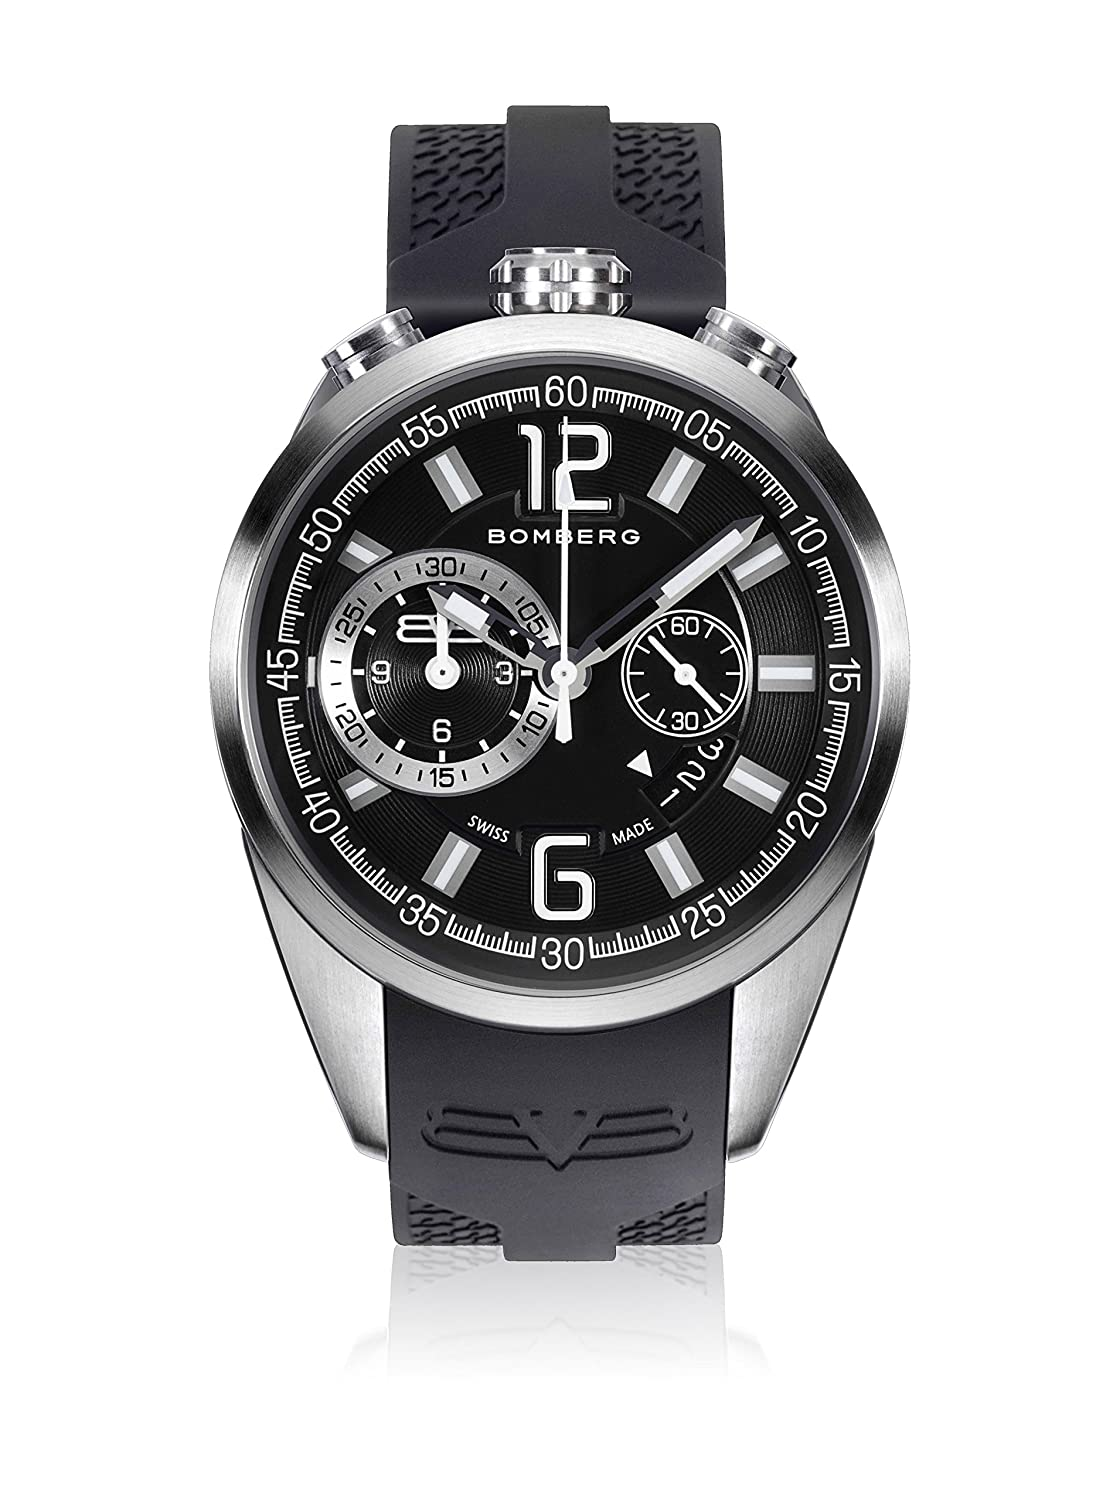 Bomberg NS44CHSS.0076.2 1968 collection Uhren - Swiss Made - 44 mm